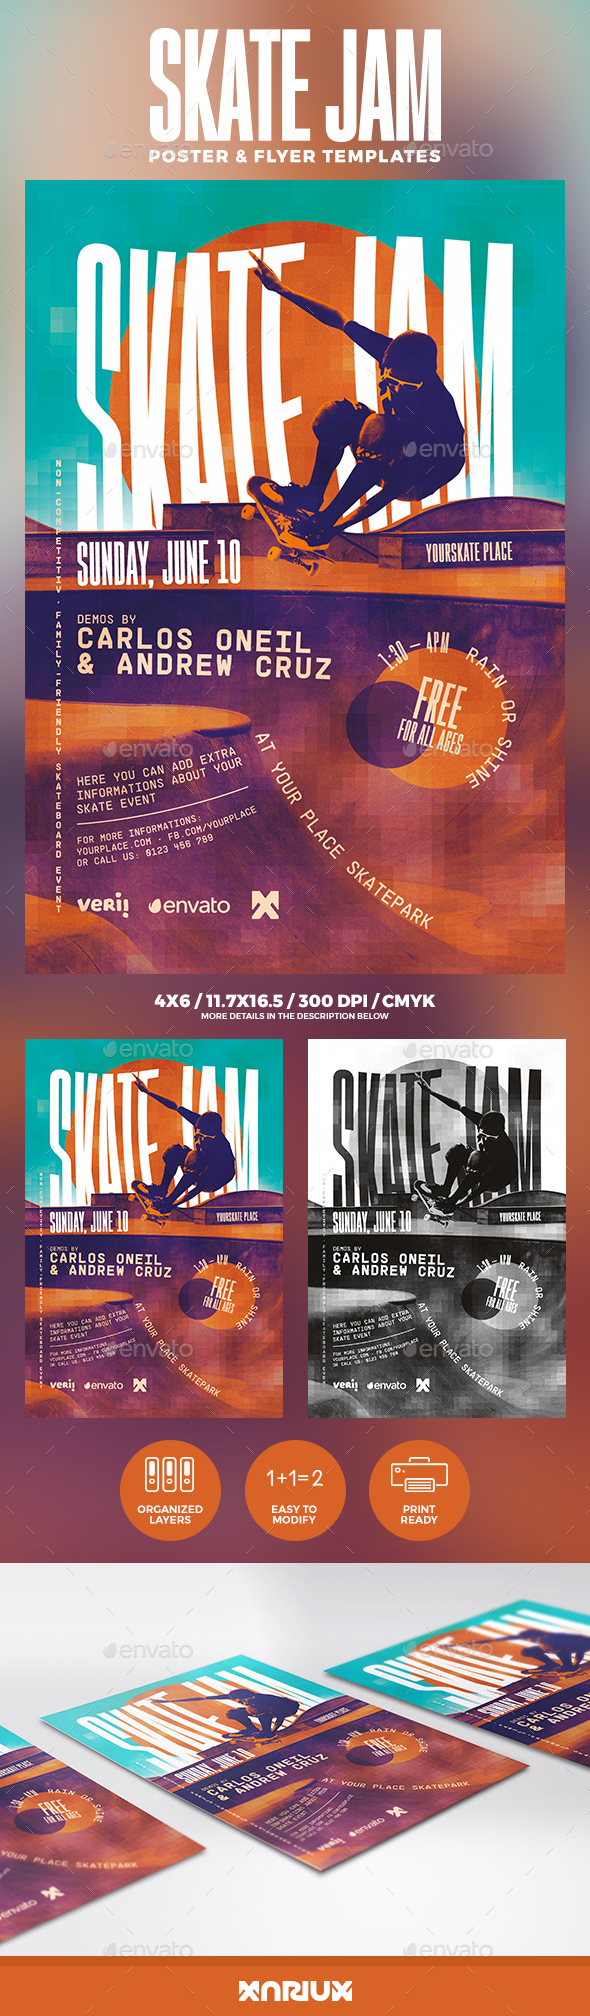 Skate Jam Flyer & Poster Template - Sports Events